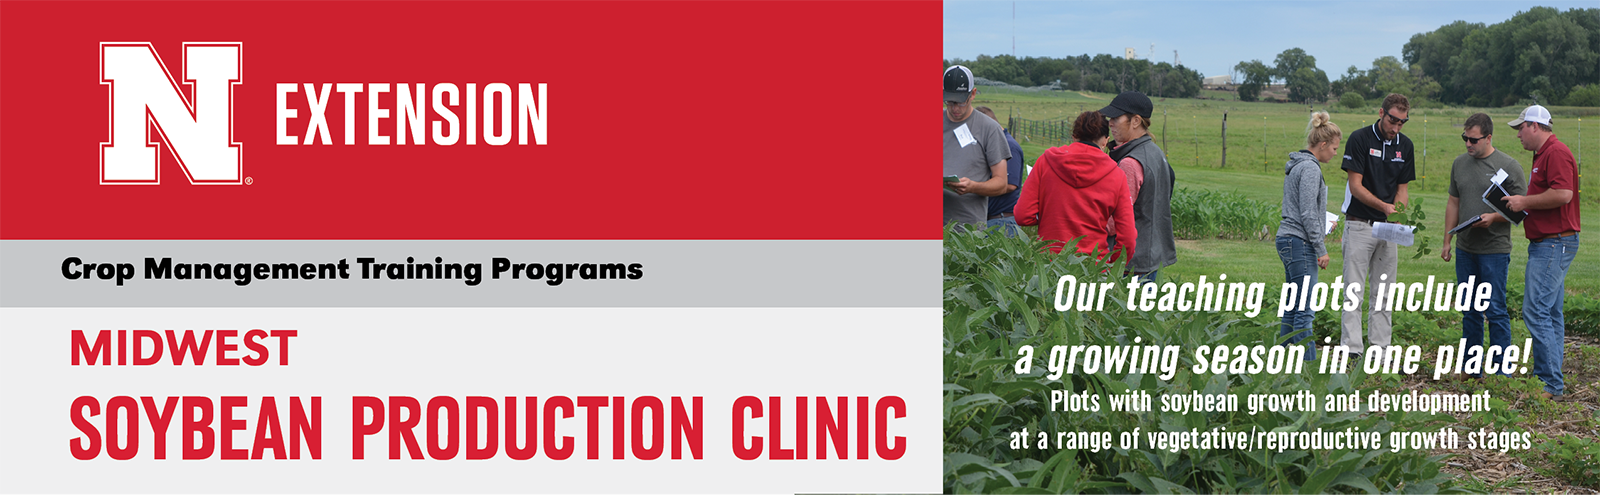 Midwest Soybean Production Training